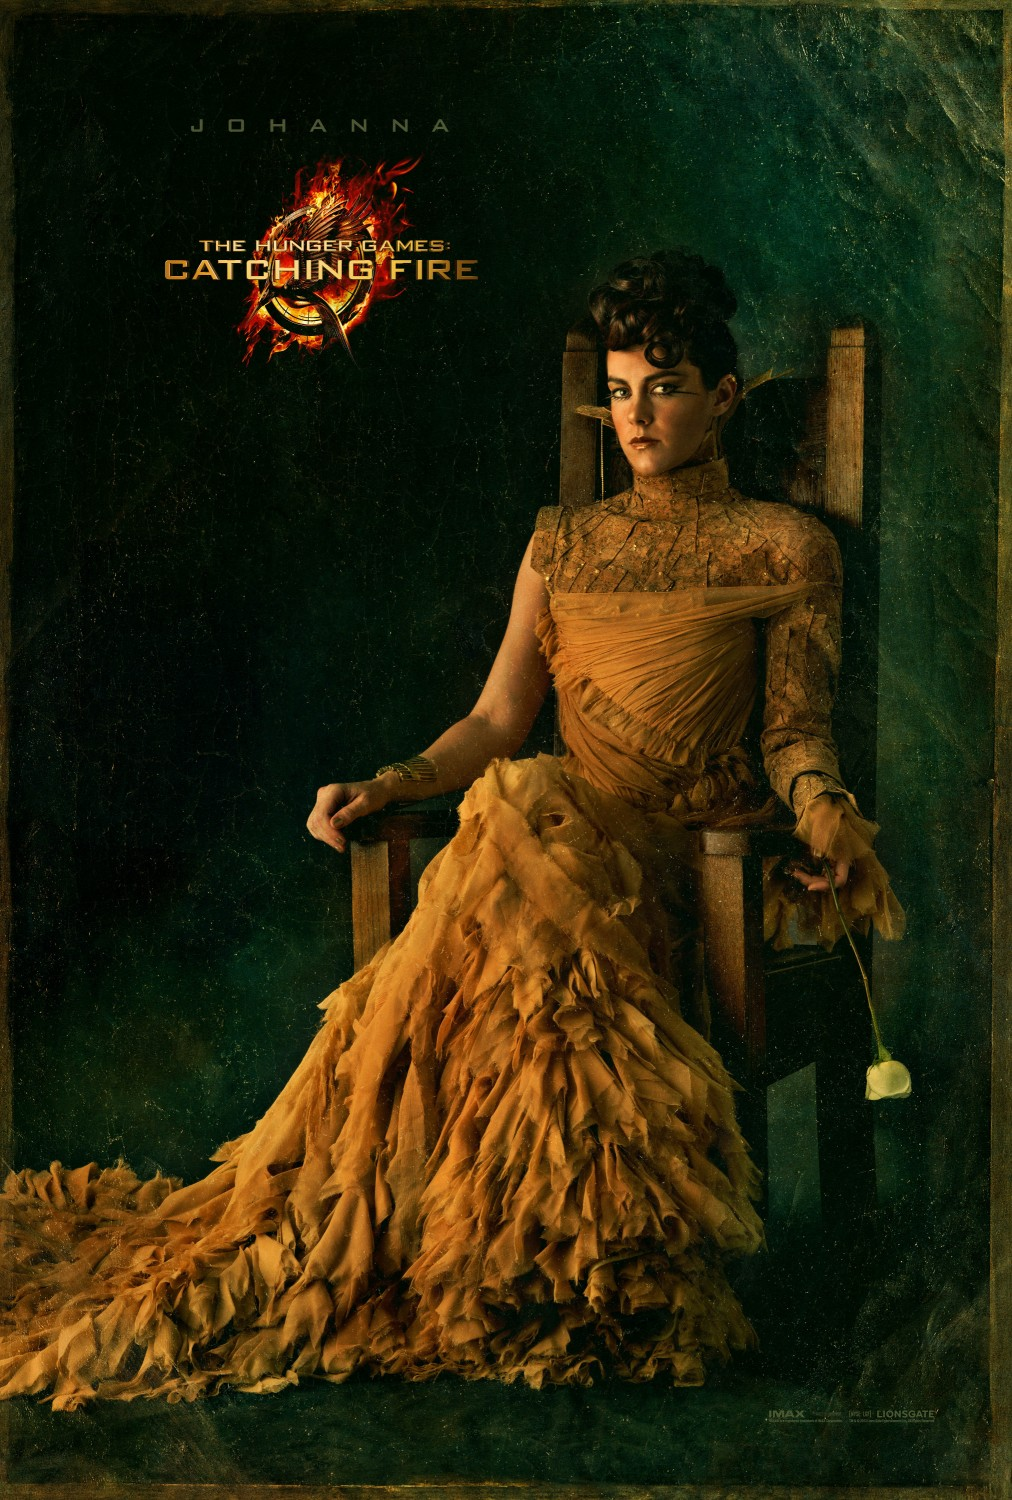 The Hunger Games Catching Fire - Poster - 010 - Johanna